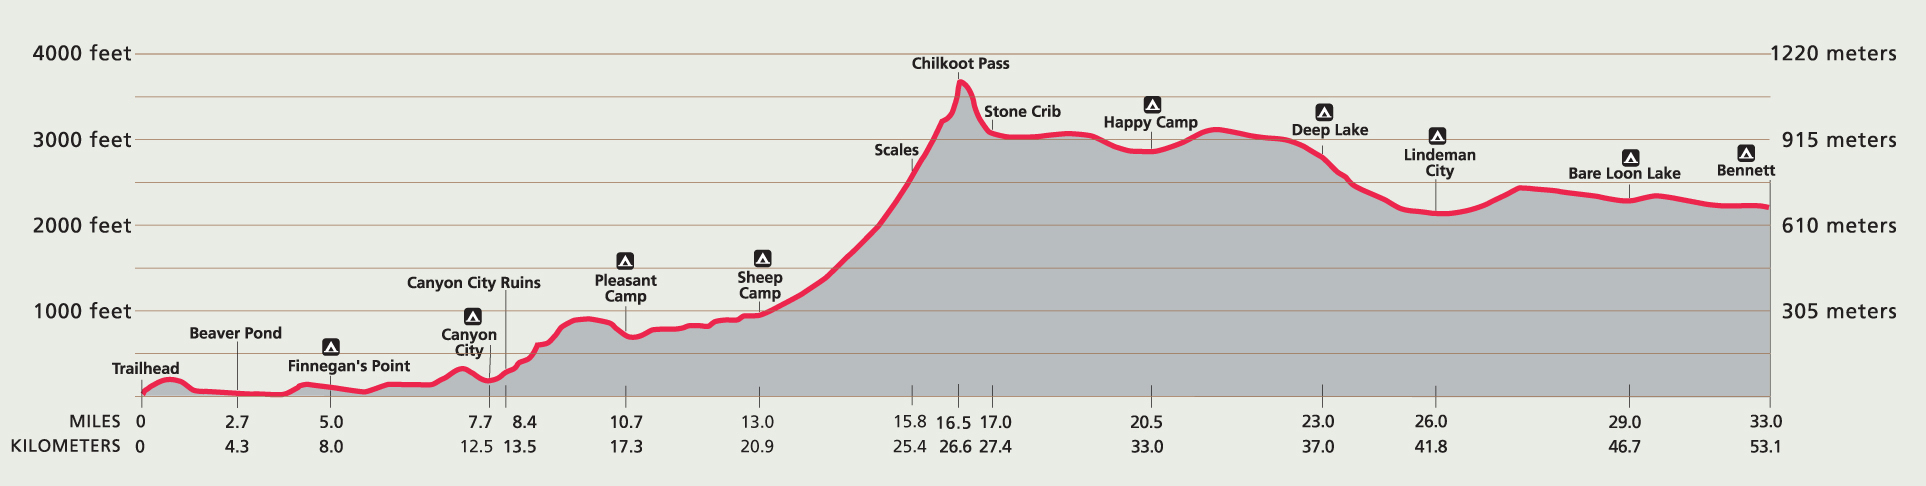 Chilkoot Trail Elevation Map.Chilkoot Trail Profile Chilkoot Trail National Historic Site